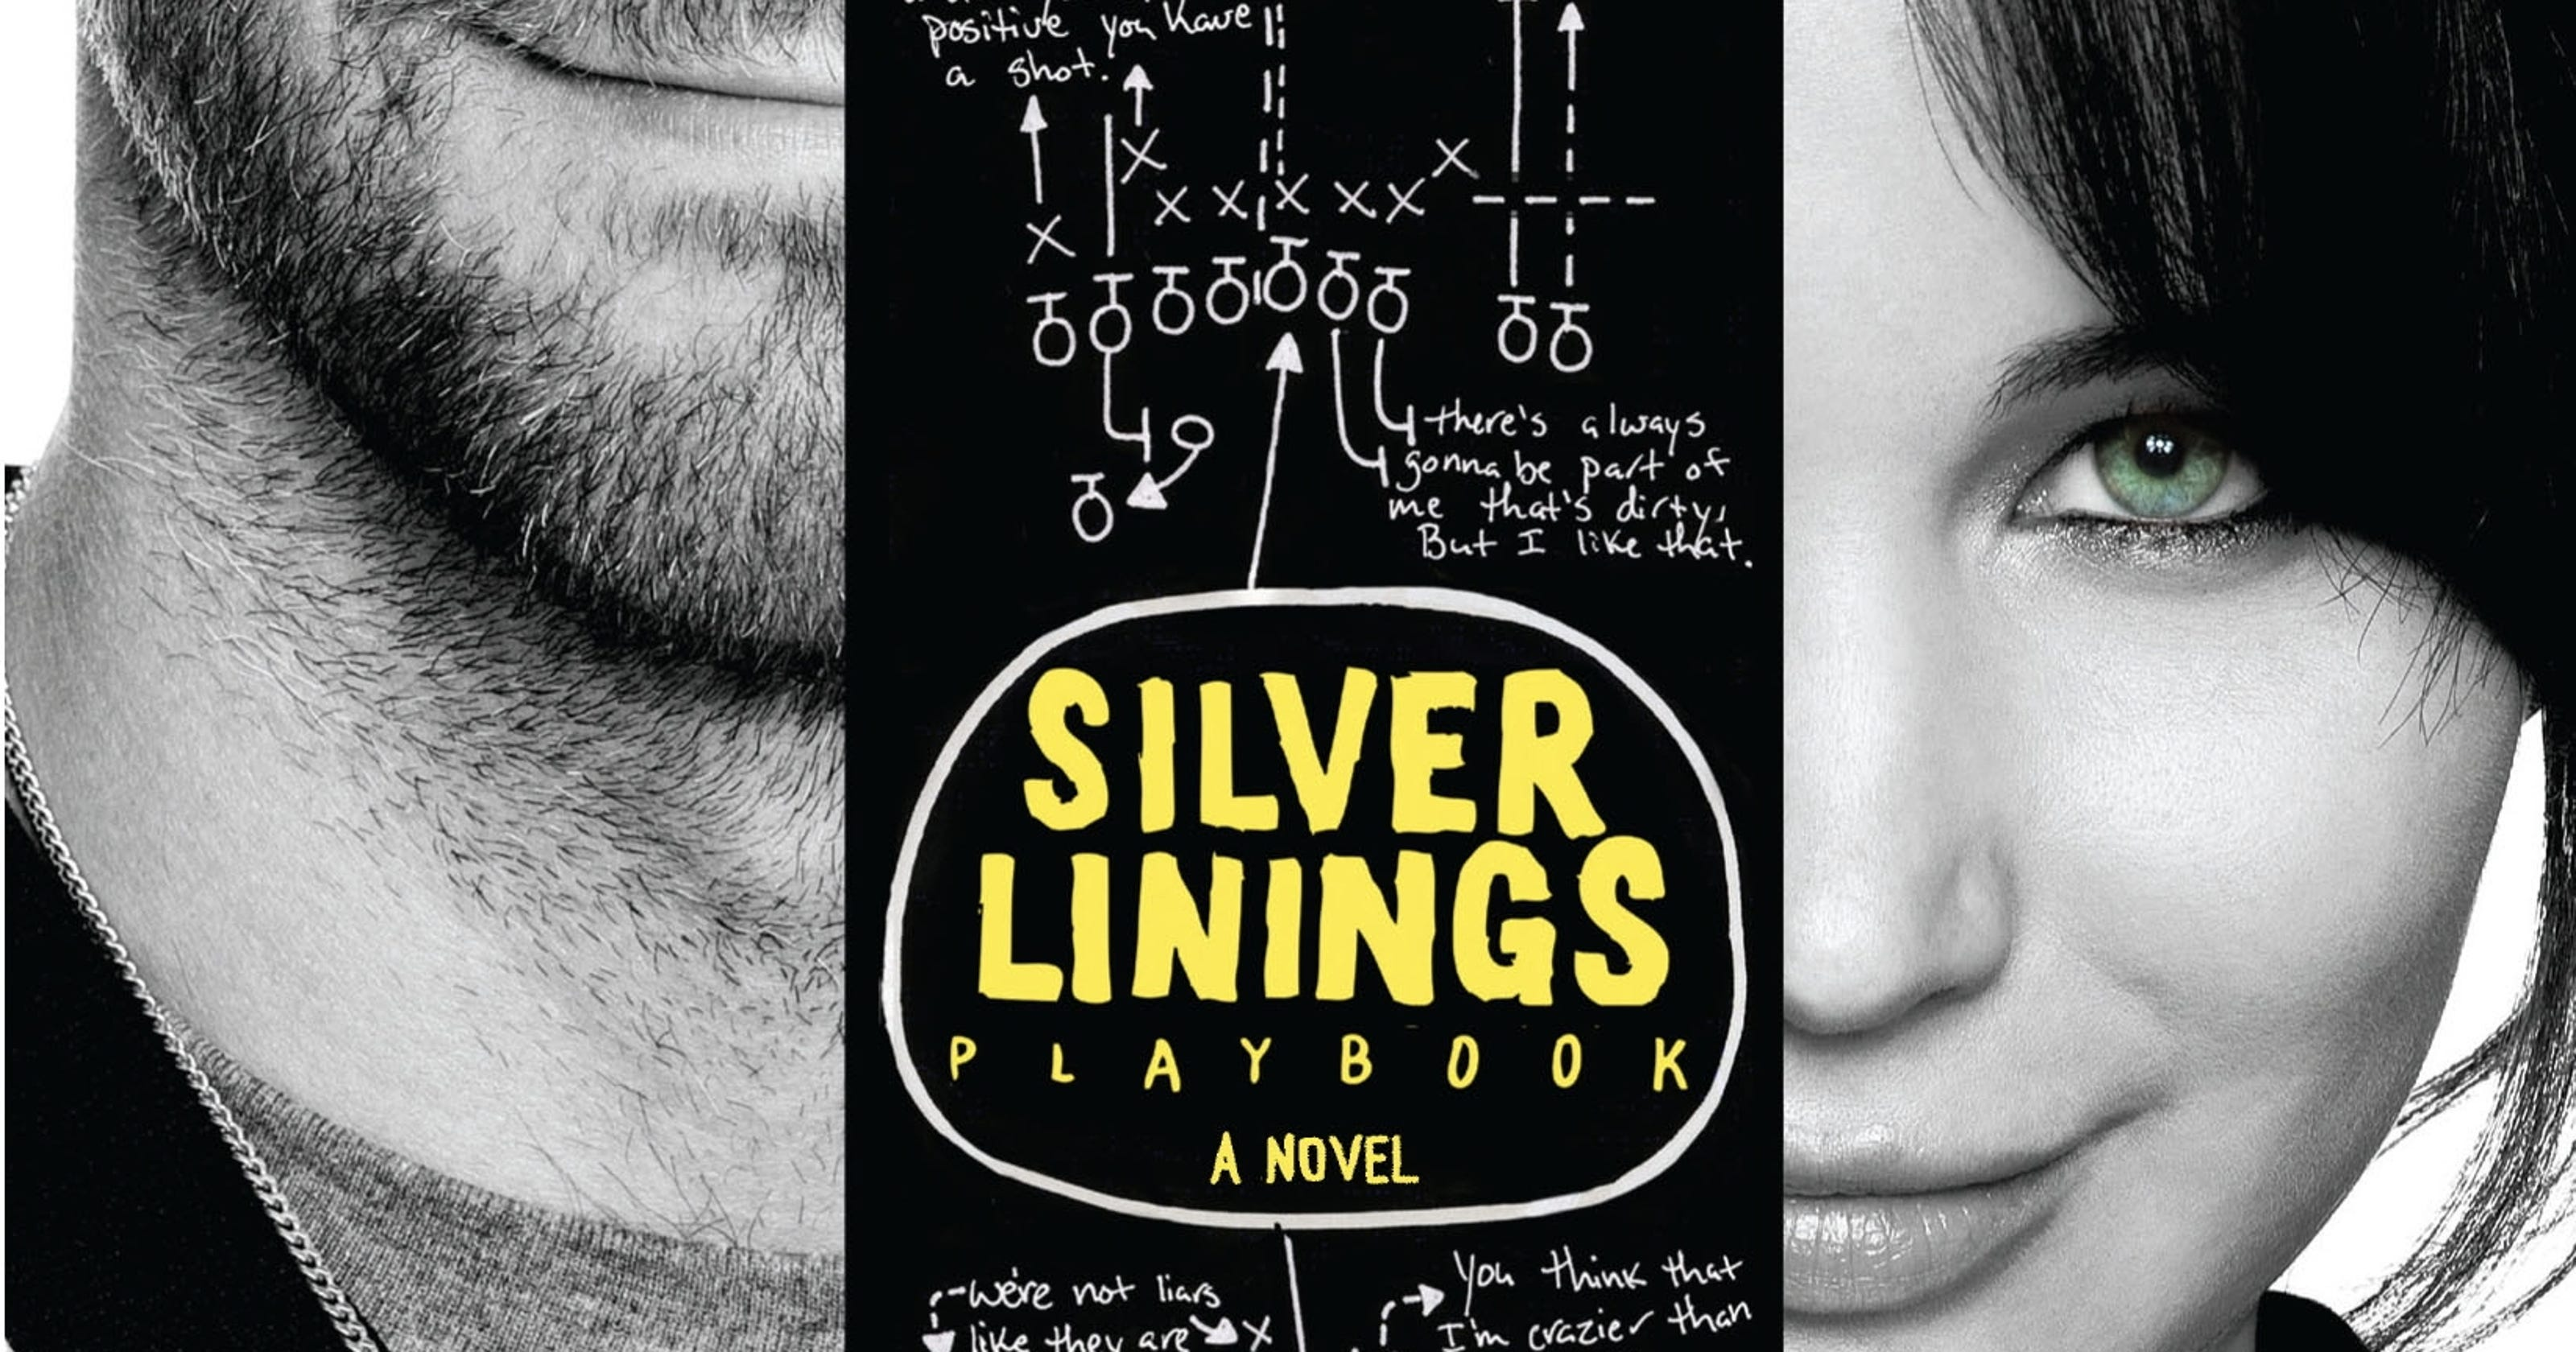 silver linings playbook success isn t exactly how author drew it up